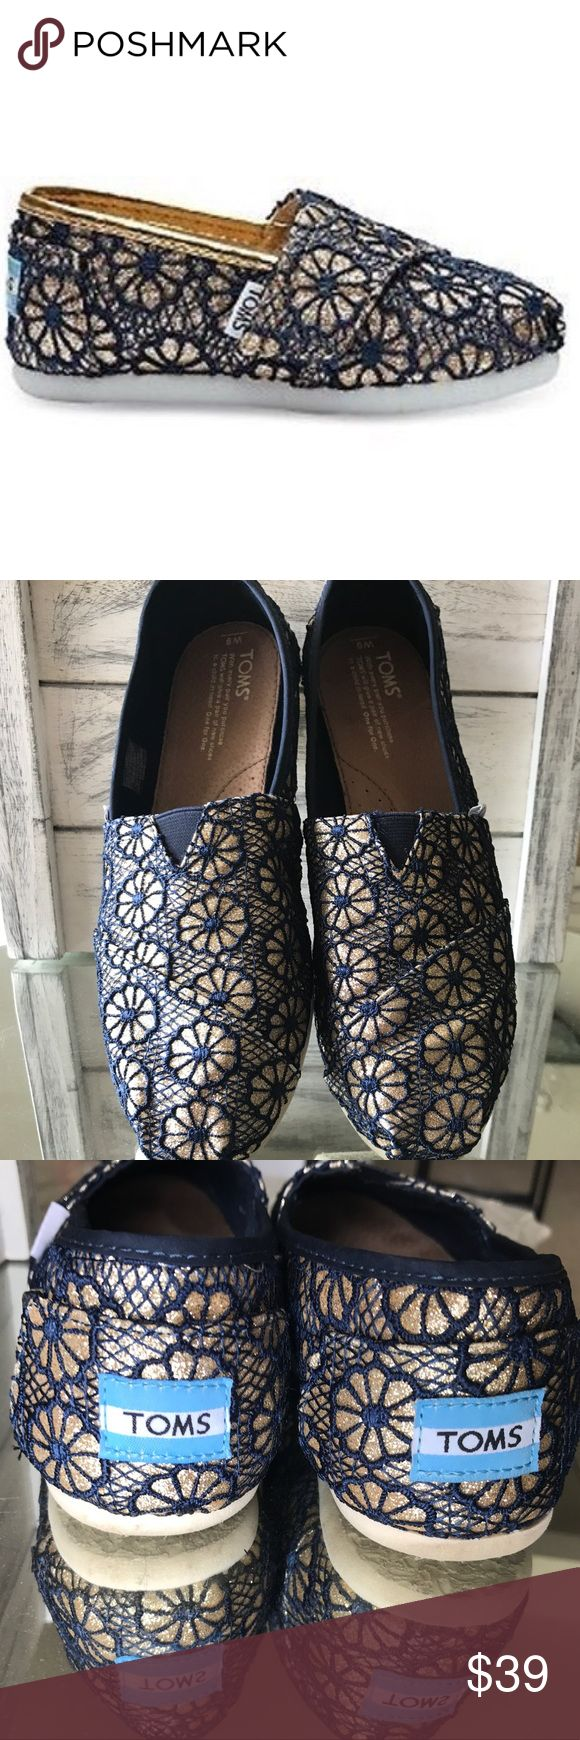 Navy & gold sparkle lace TOMS sz9 The shoes have barely been worn come from a smoke free home are in Great condition see photos for closer details if you need more photos or a measurement of any kind please ask I'll be happy to provide Toms Shoes Flats & Loafers